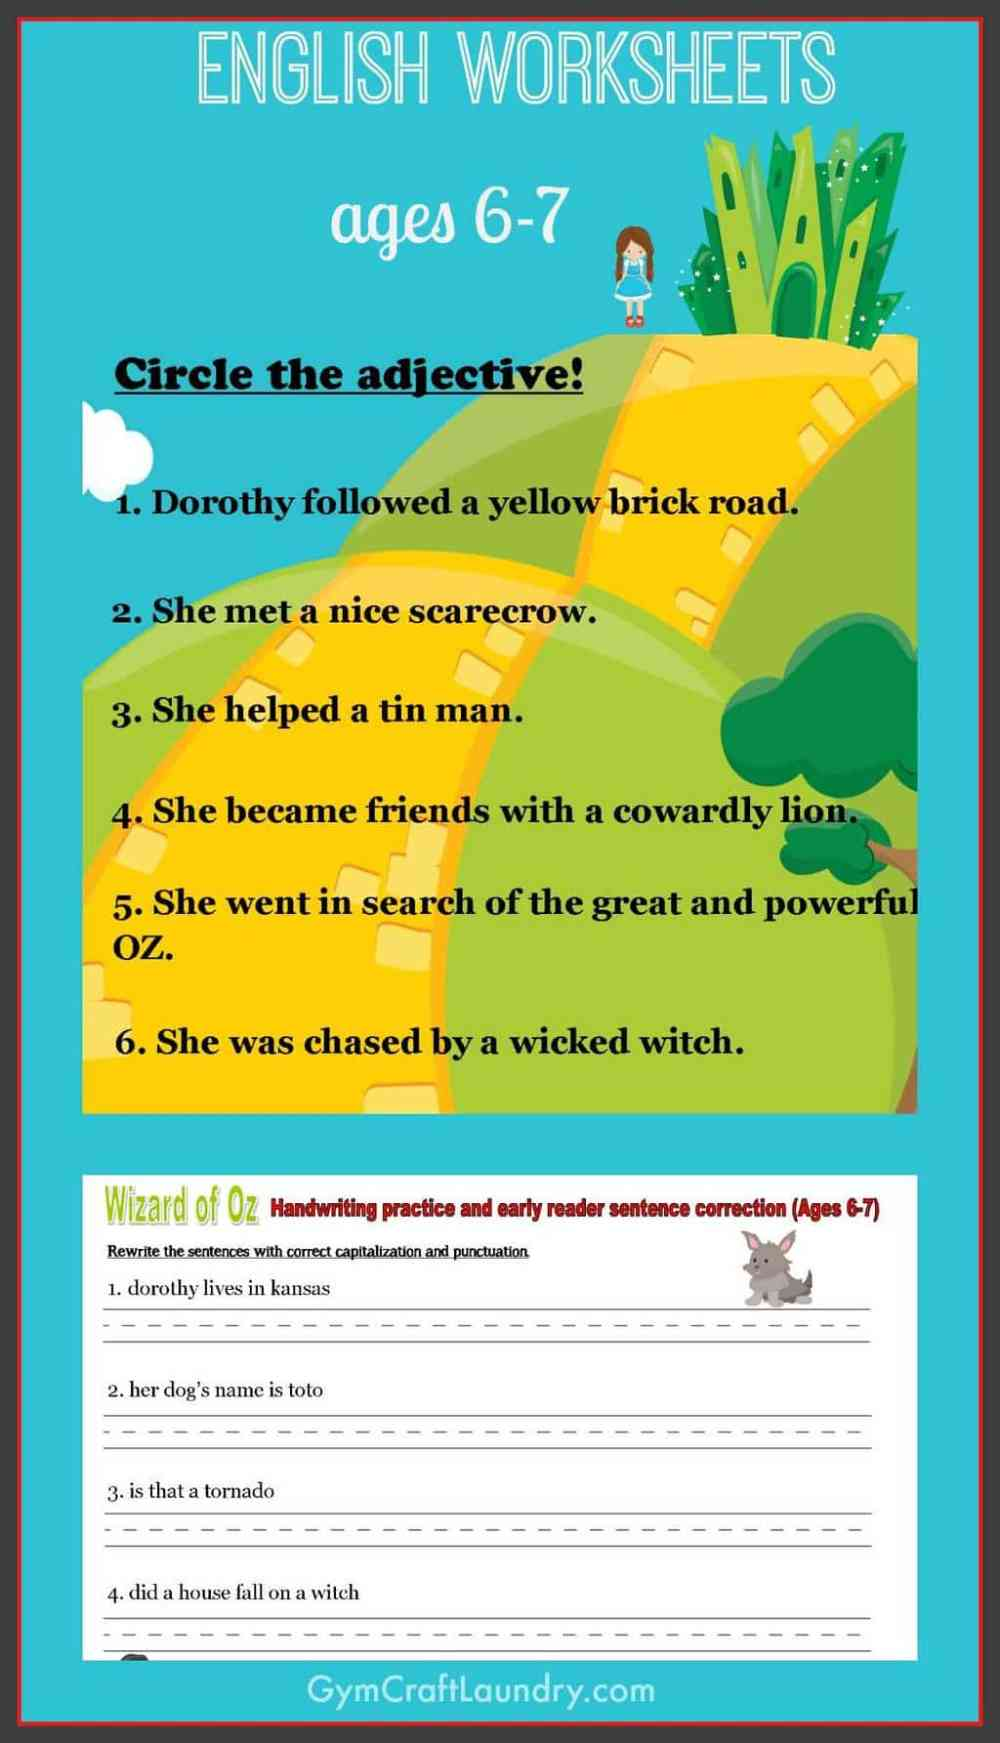 medium resolution of First Grade English Worksheets: Wizard of Oz themed - Gym Craft Laundry